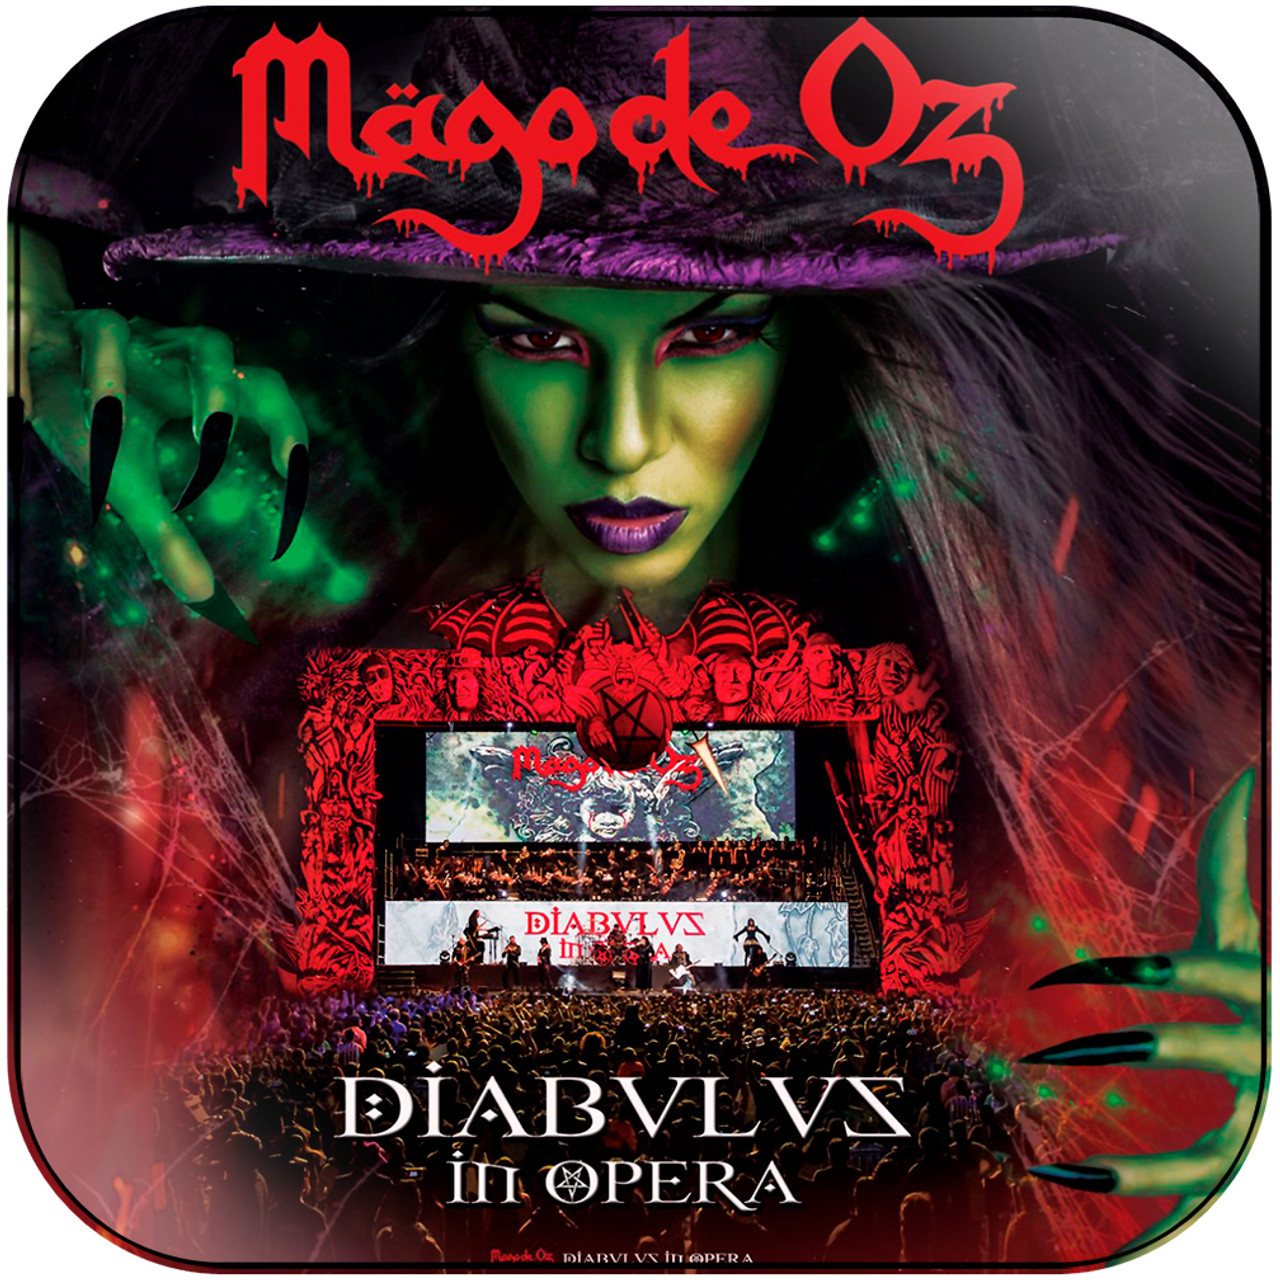 Mago De Oz Diabulus In Opera Album Cover Sticker